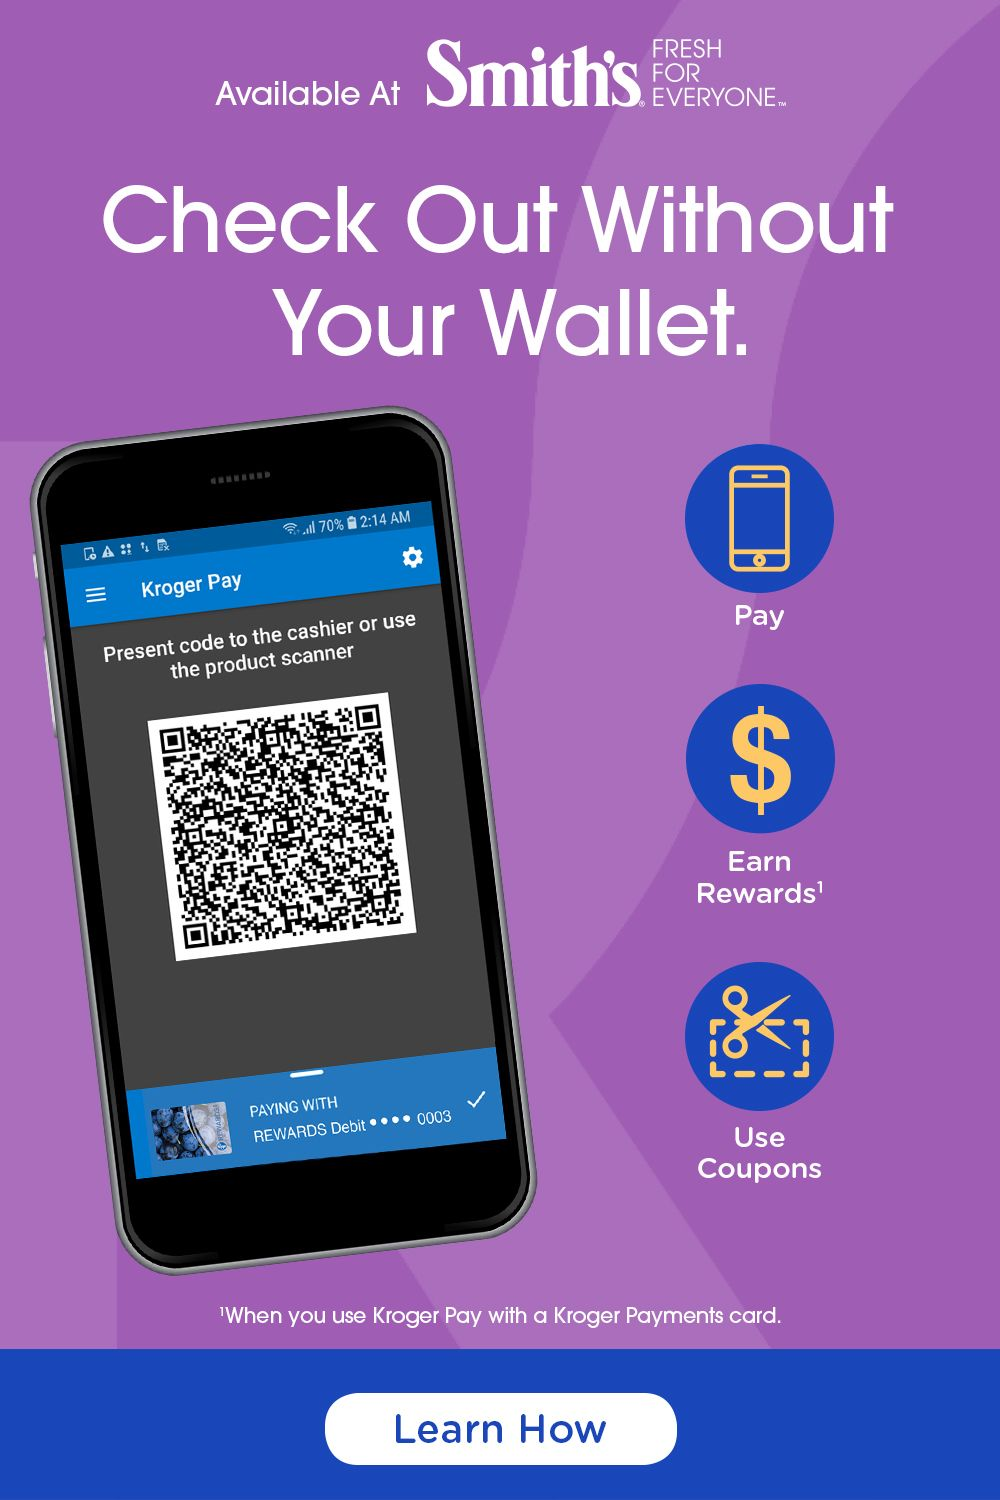 Leave your wallet at home and save time at checkout with